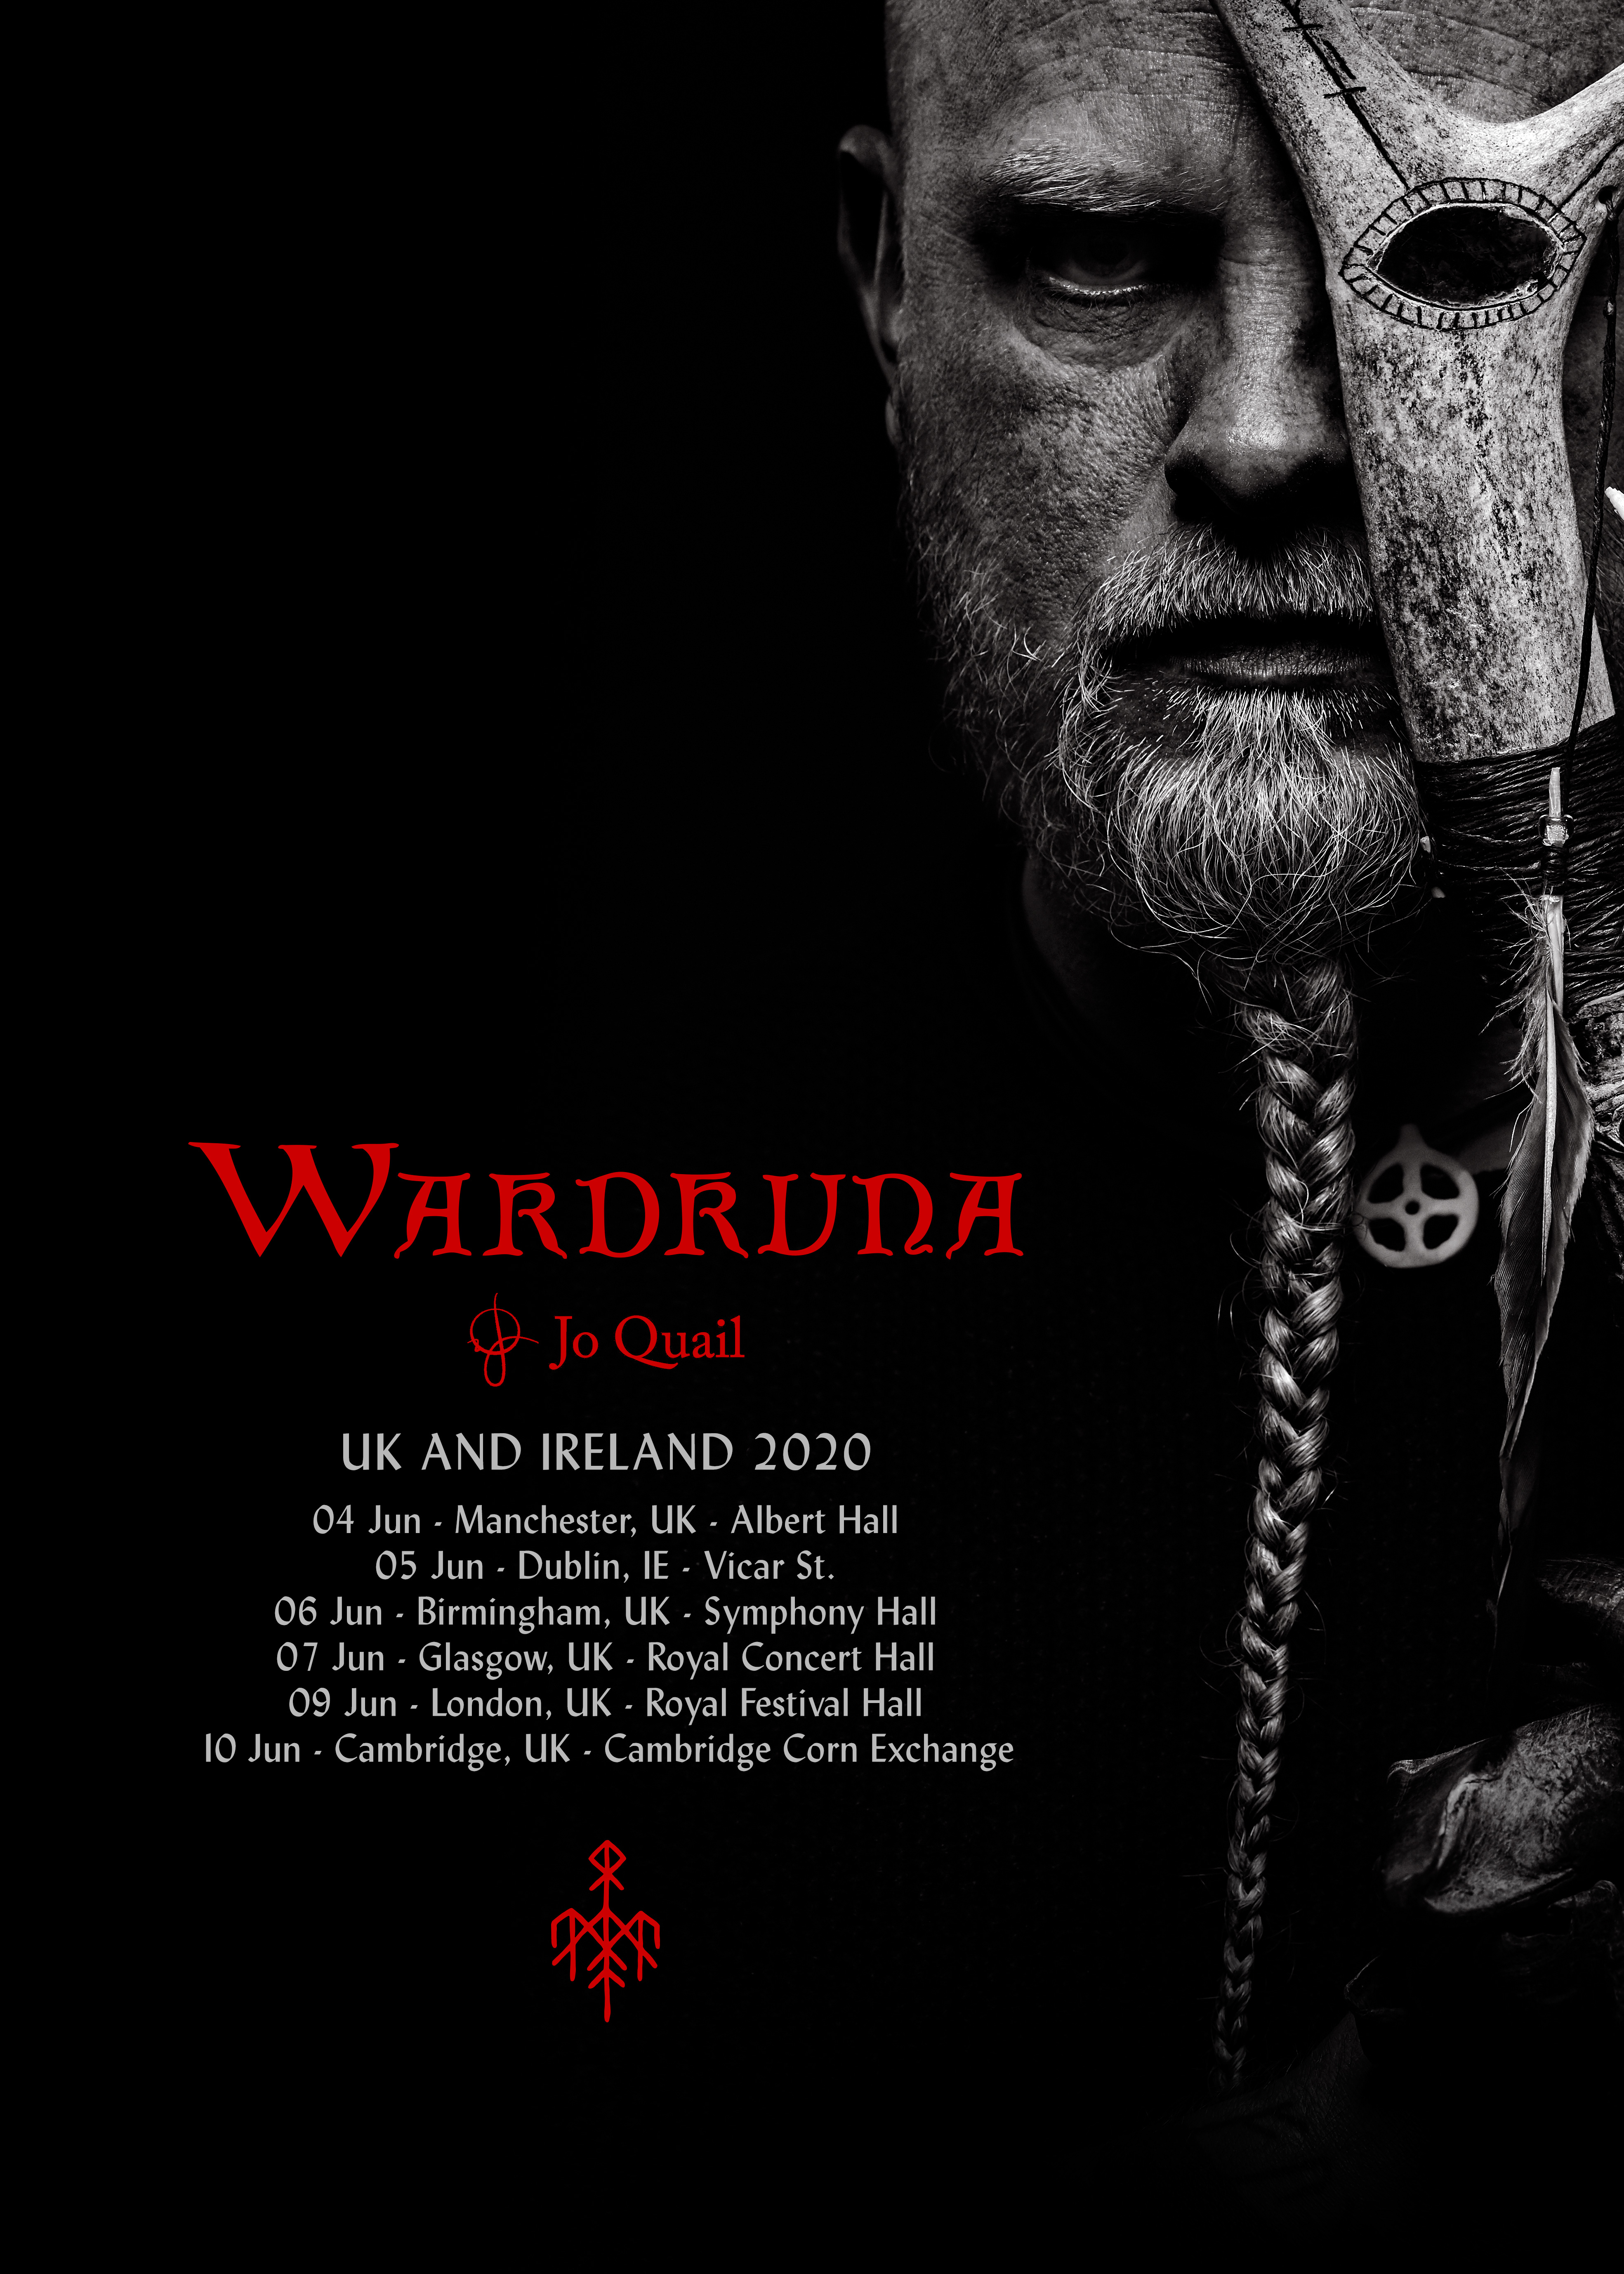 UK Tour with Wardruna – I'm delighted to have been invited to support Wardruna in June in the UK, and I hope to see you at one of these beautiful venues.